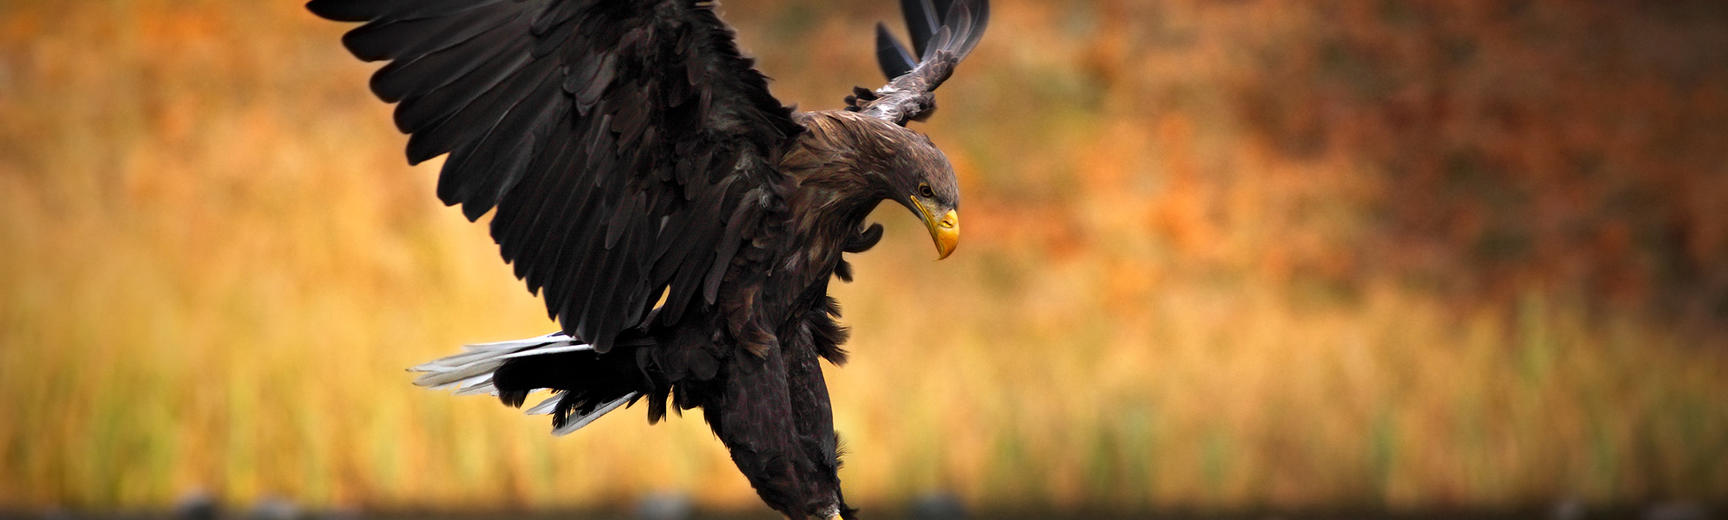 White-tailed Eagle, Haliaeetus albicilla, hunting fish from the water, with brown grass in background, in Norway.